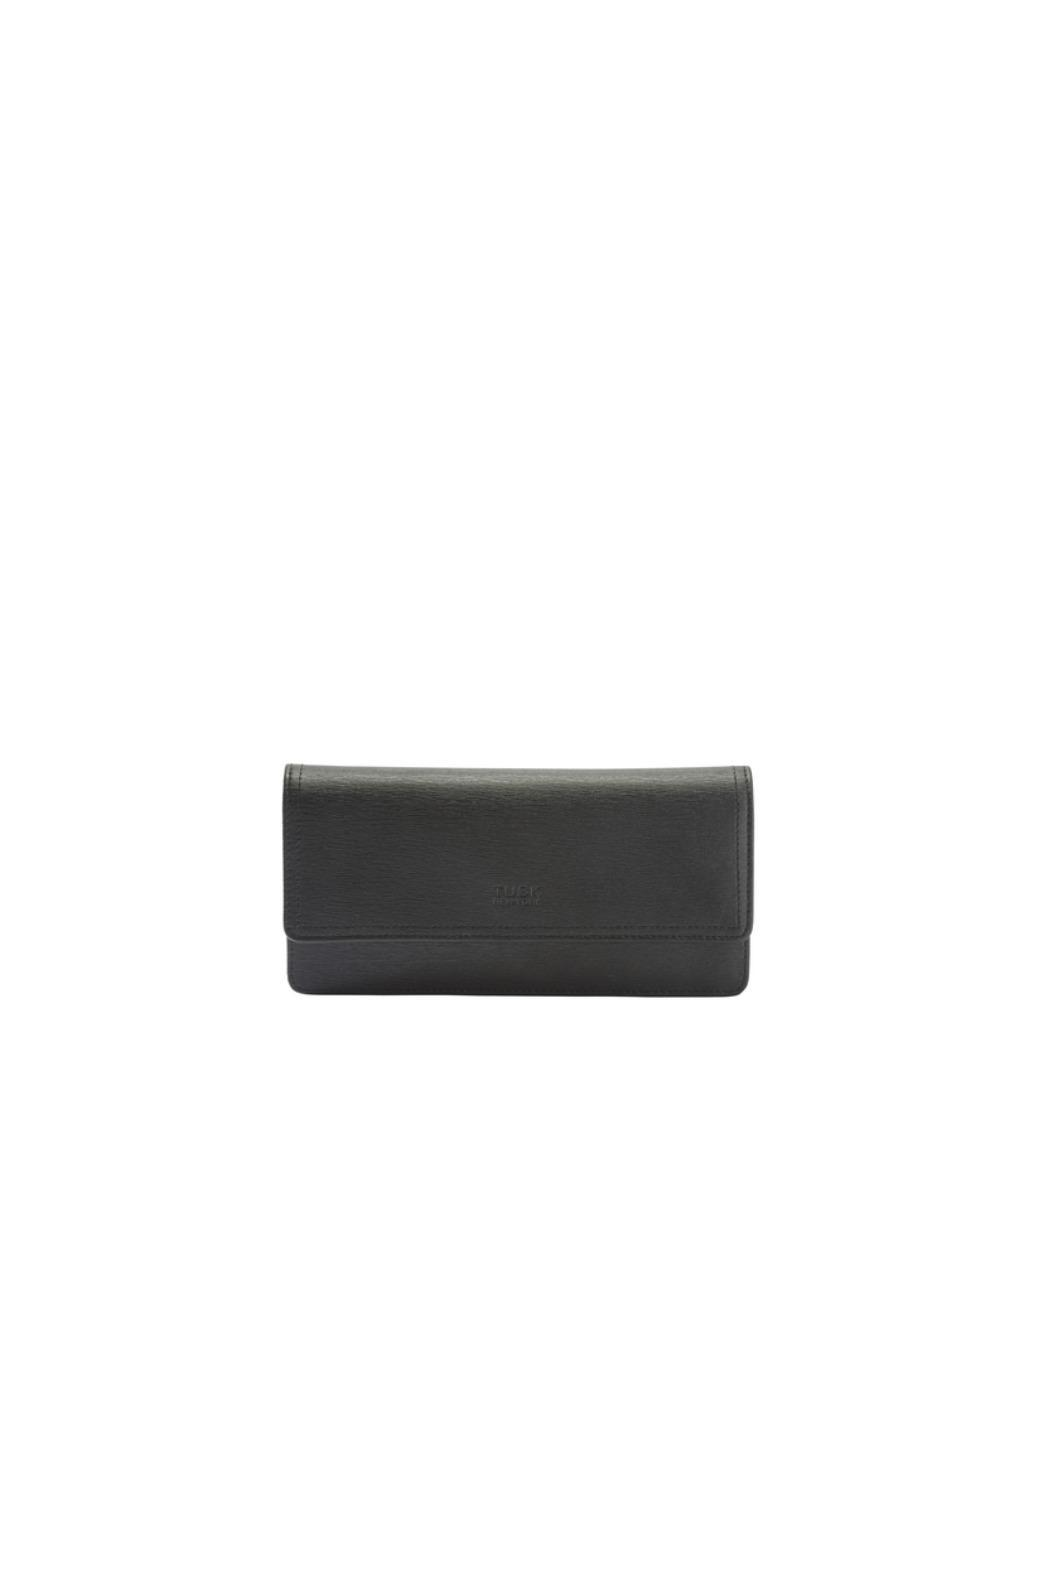 tusk Gusseted Clutch Wallet - Main Image